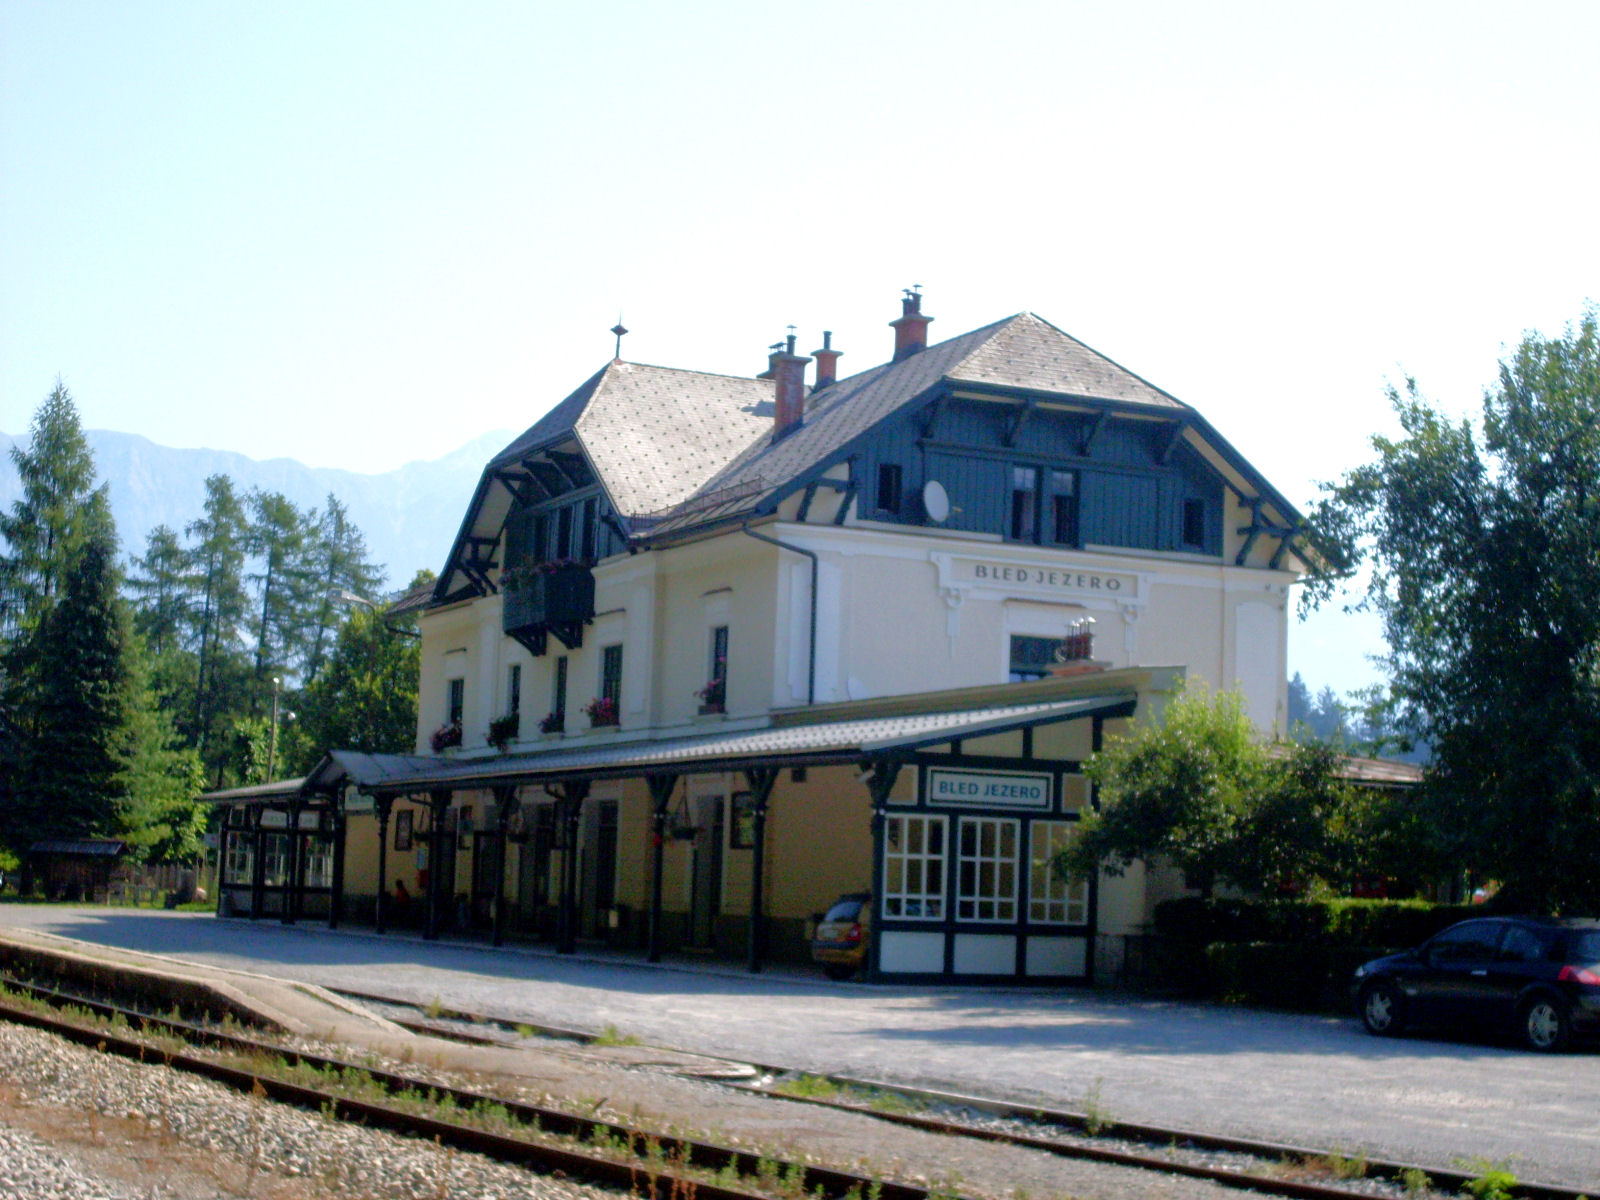 bled-jezero-train-station